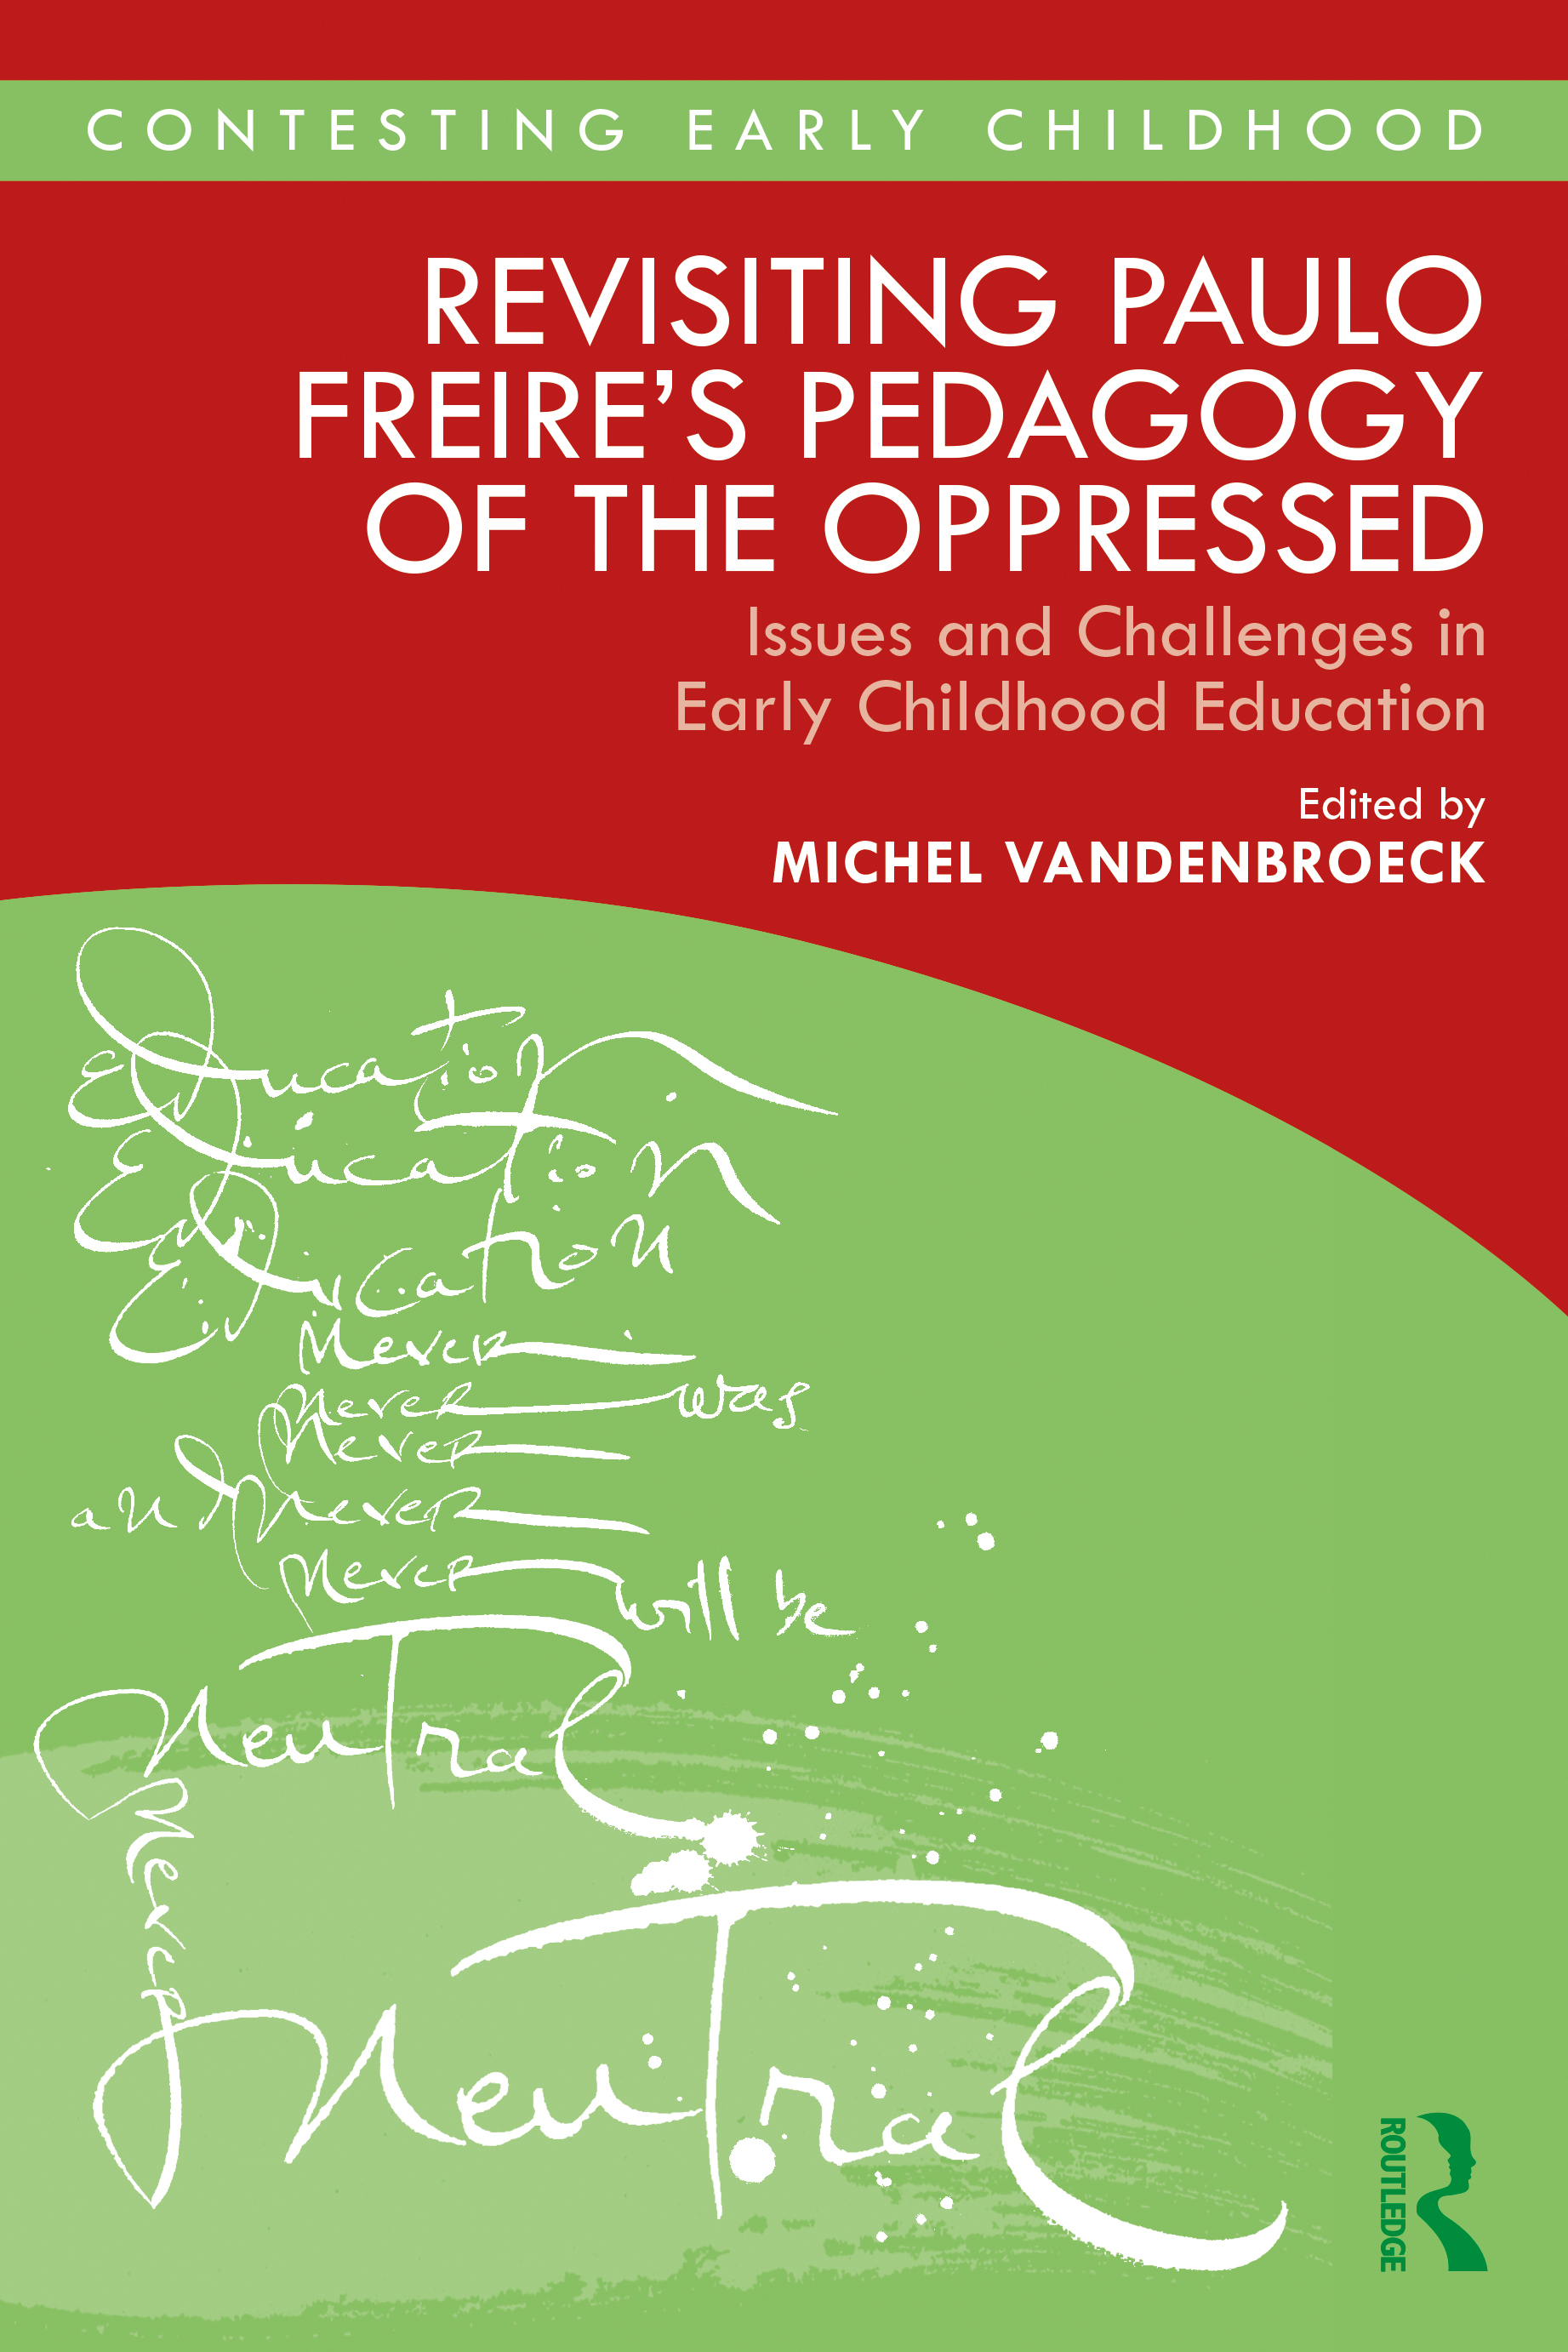 Revisiting Paulo Freire's Pedagogy of the Oppressed